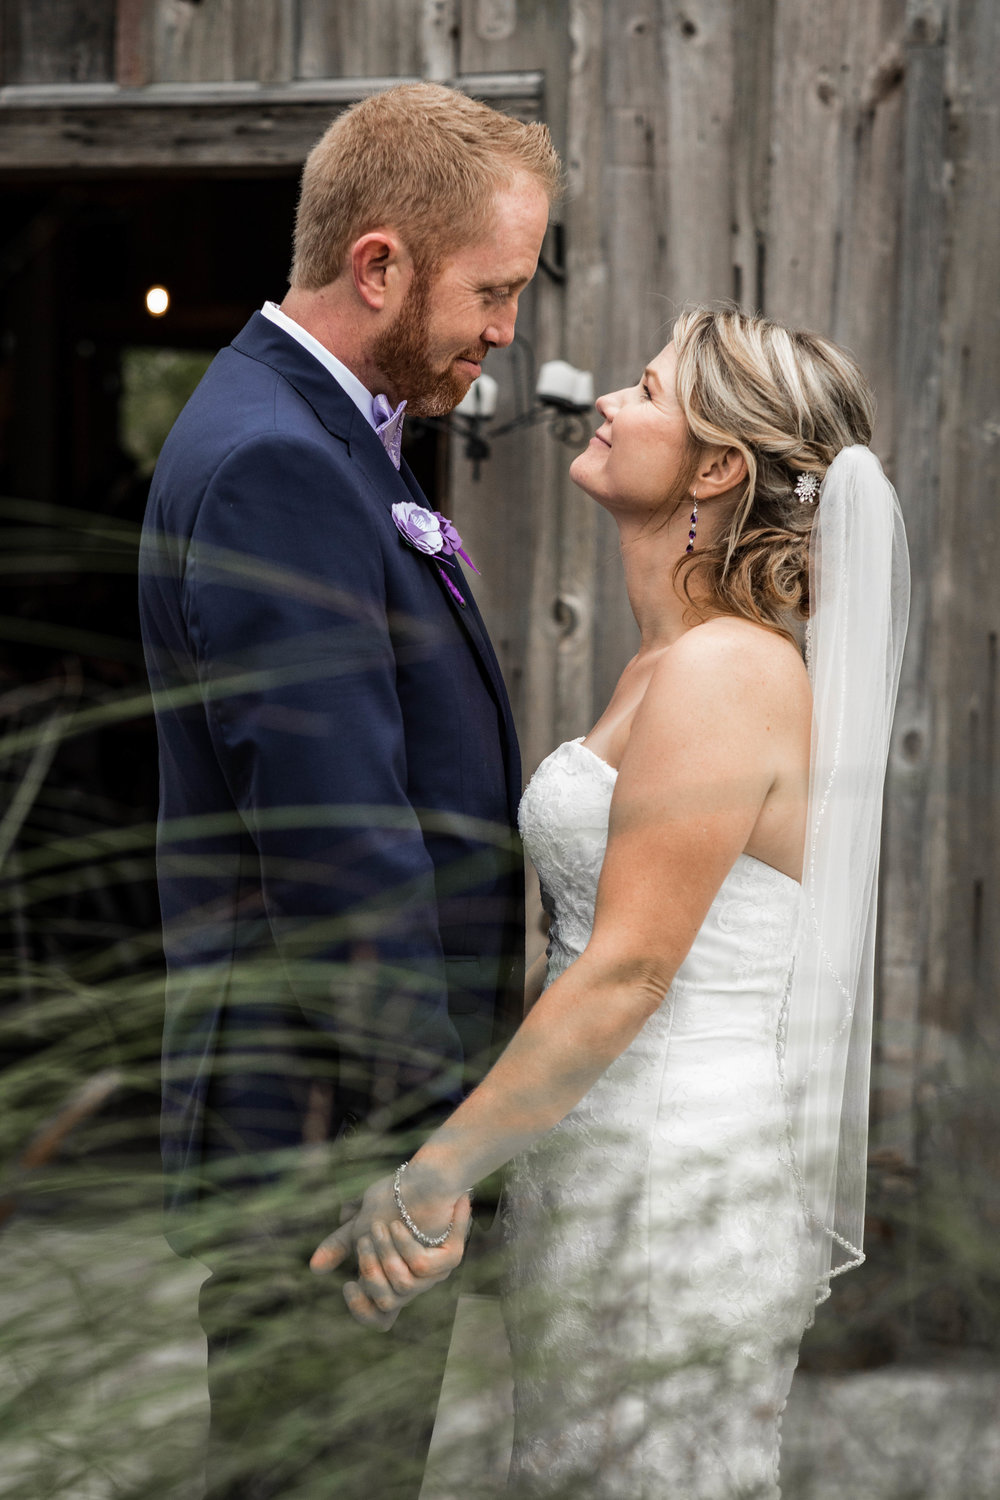 Bride and groom portrait with tall grass in front of them and a rustic barn behind